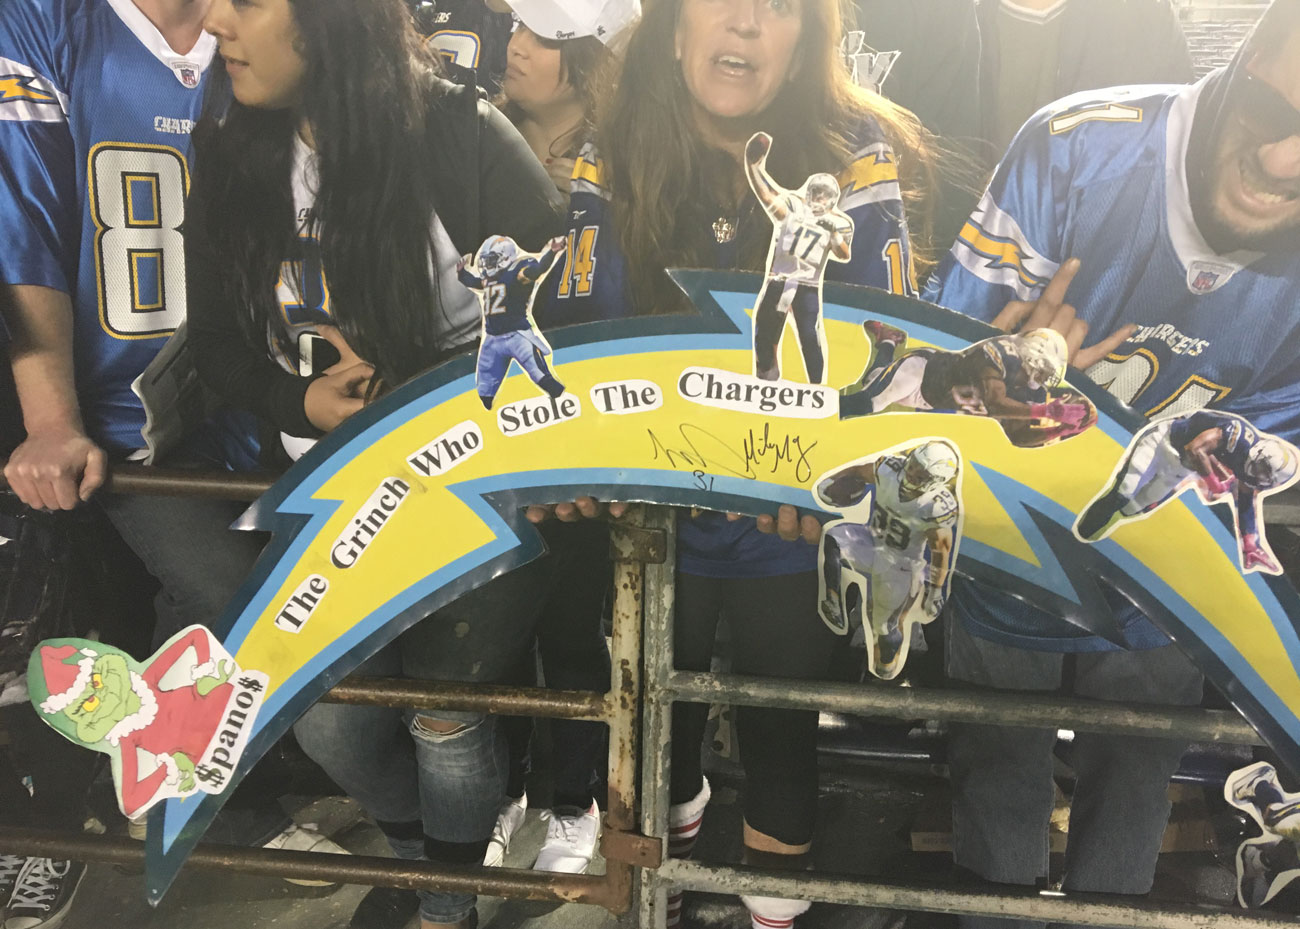 Chargers fans show a sign berated Dean Spanos at the 2015 home finale.